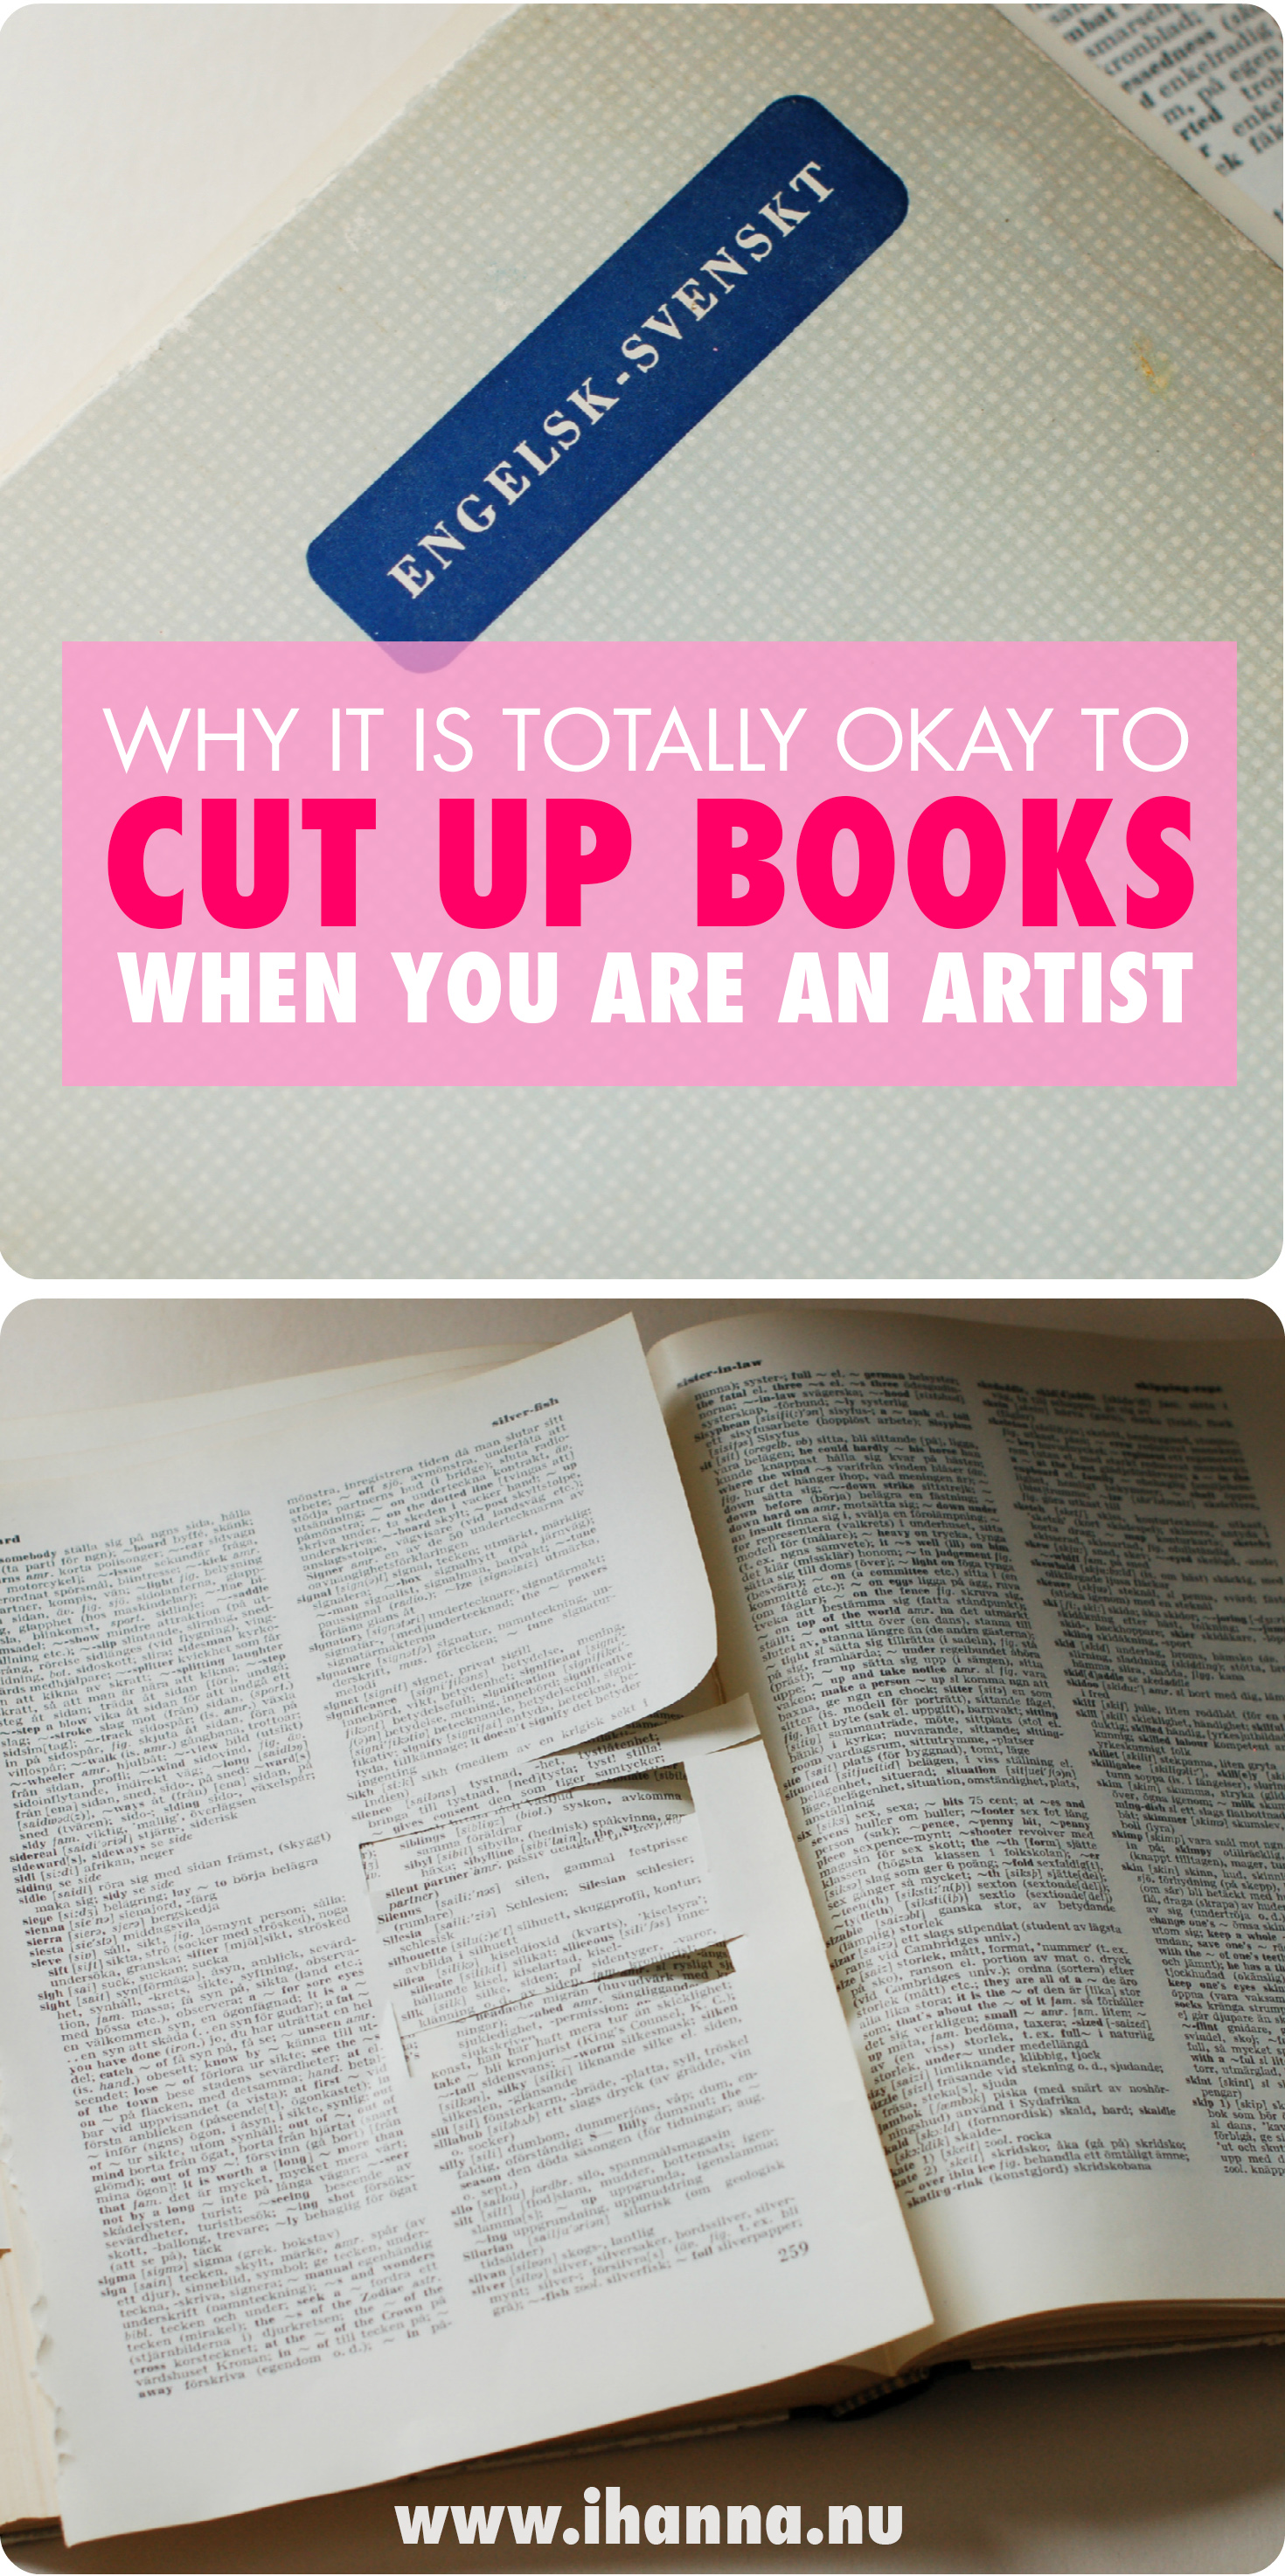 Why Cutting up Old Books is Allowed